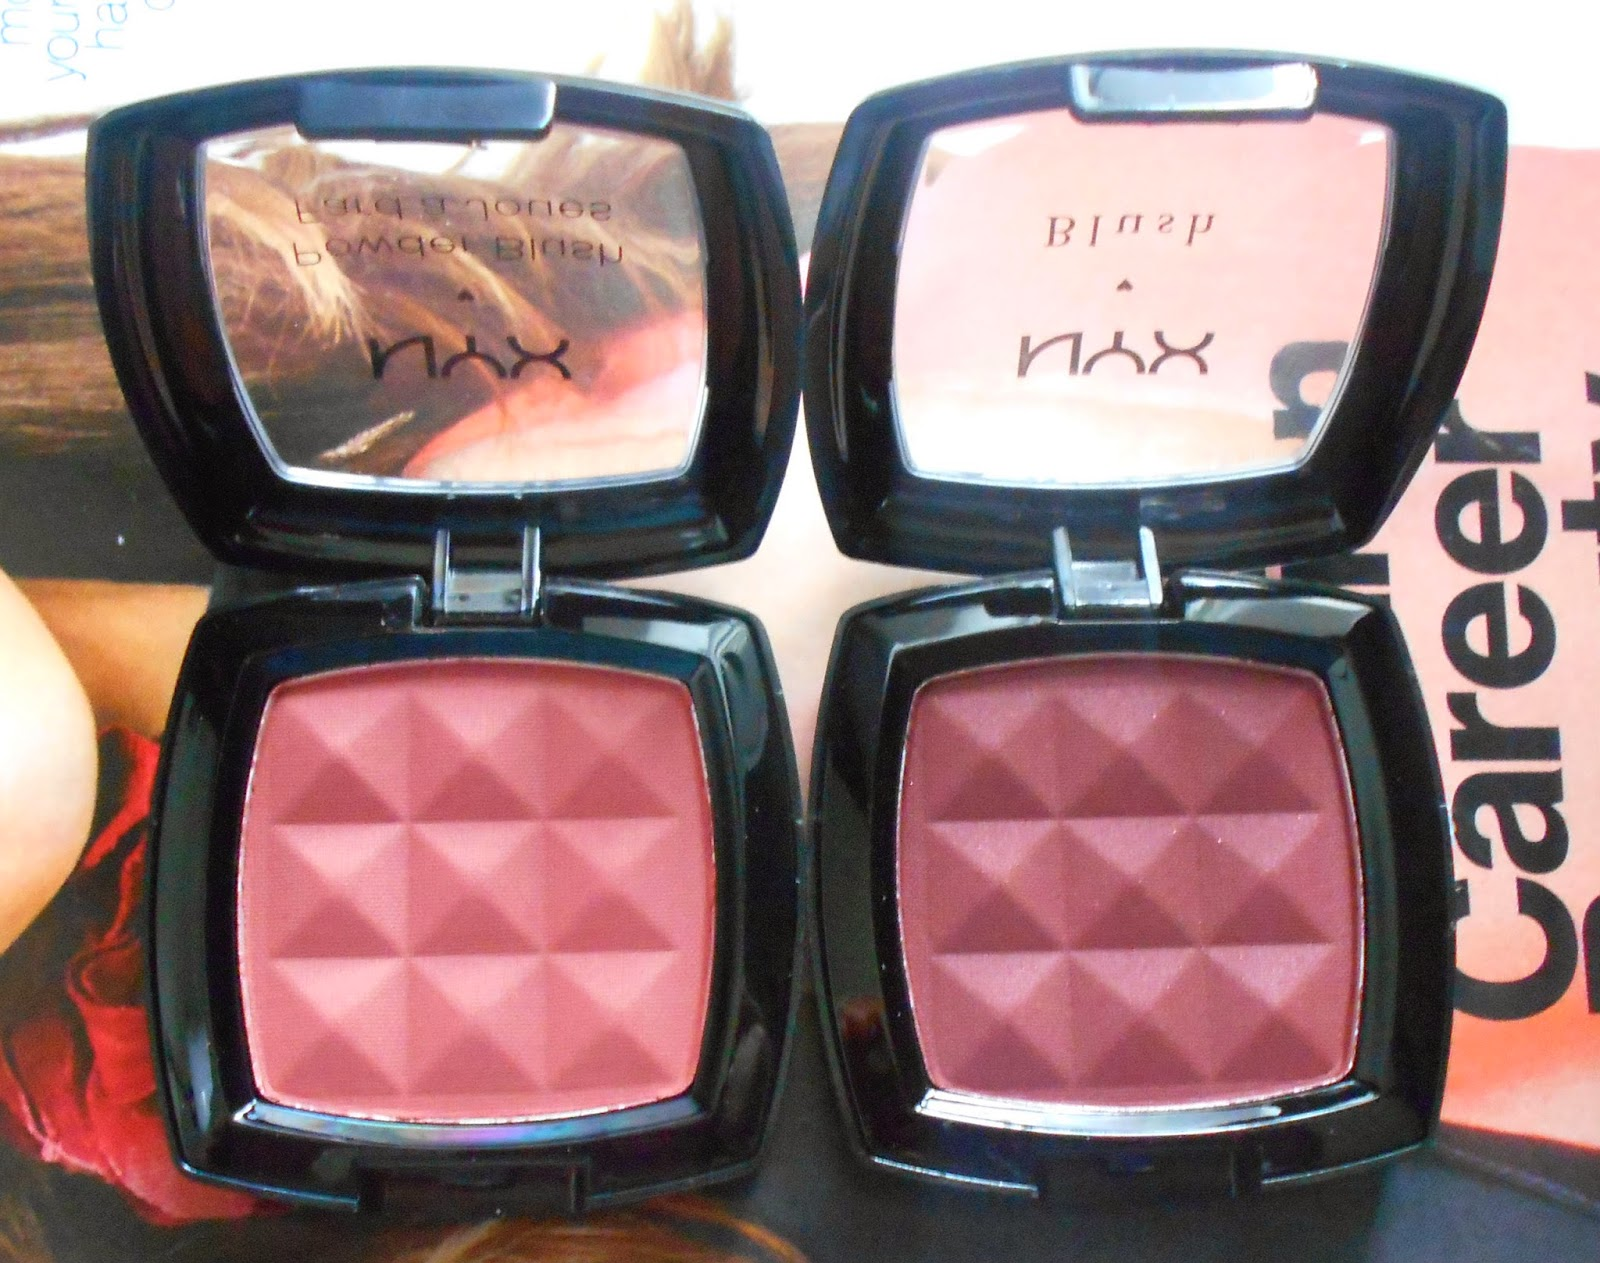 NYX Cosmetics Powder Blushes in Dusty Rose & Bordeaux! (Fall Edition!)